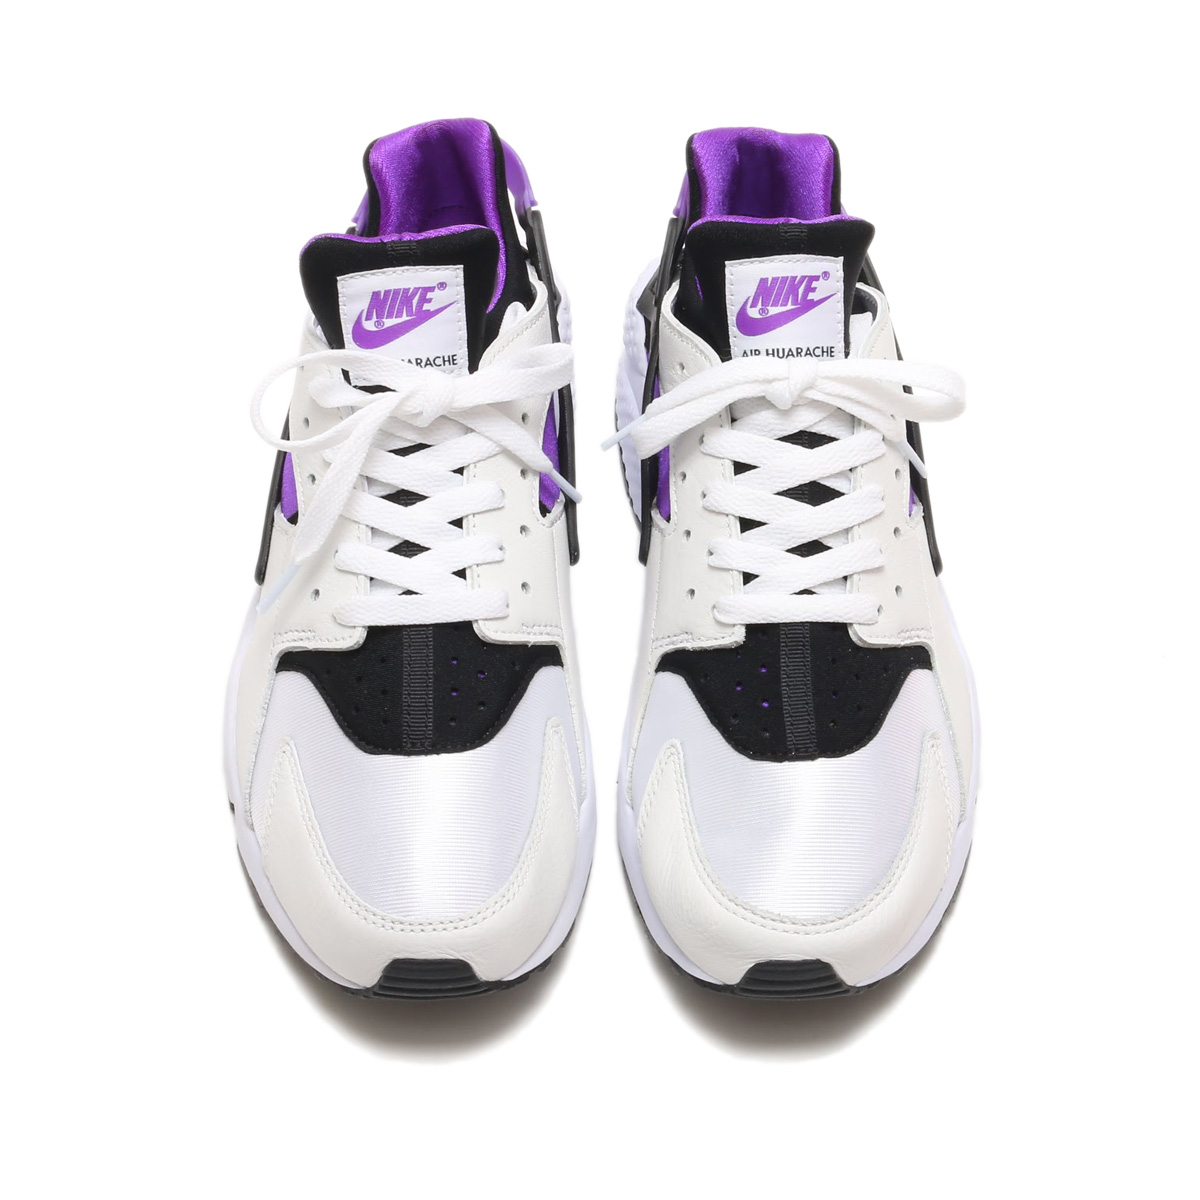 brand new 5328f db3dc NIKE AIR HUARACHE RUN  91 QS (ナイキエアハラチラン 91 QS) (BLACK PURPLE PUNCH-BLACK- WHITE) 18SP-S